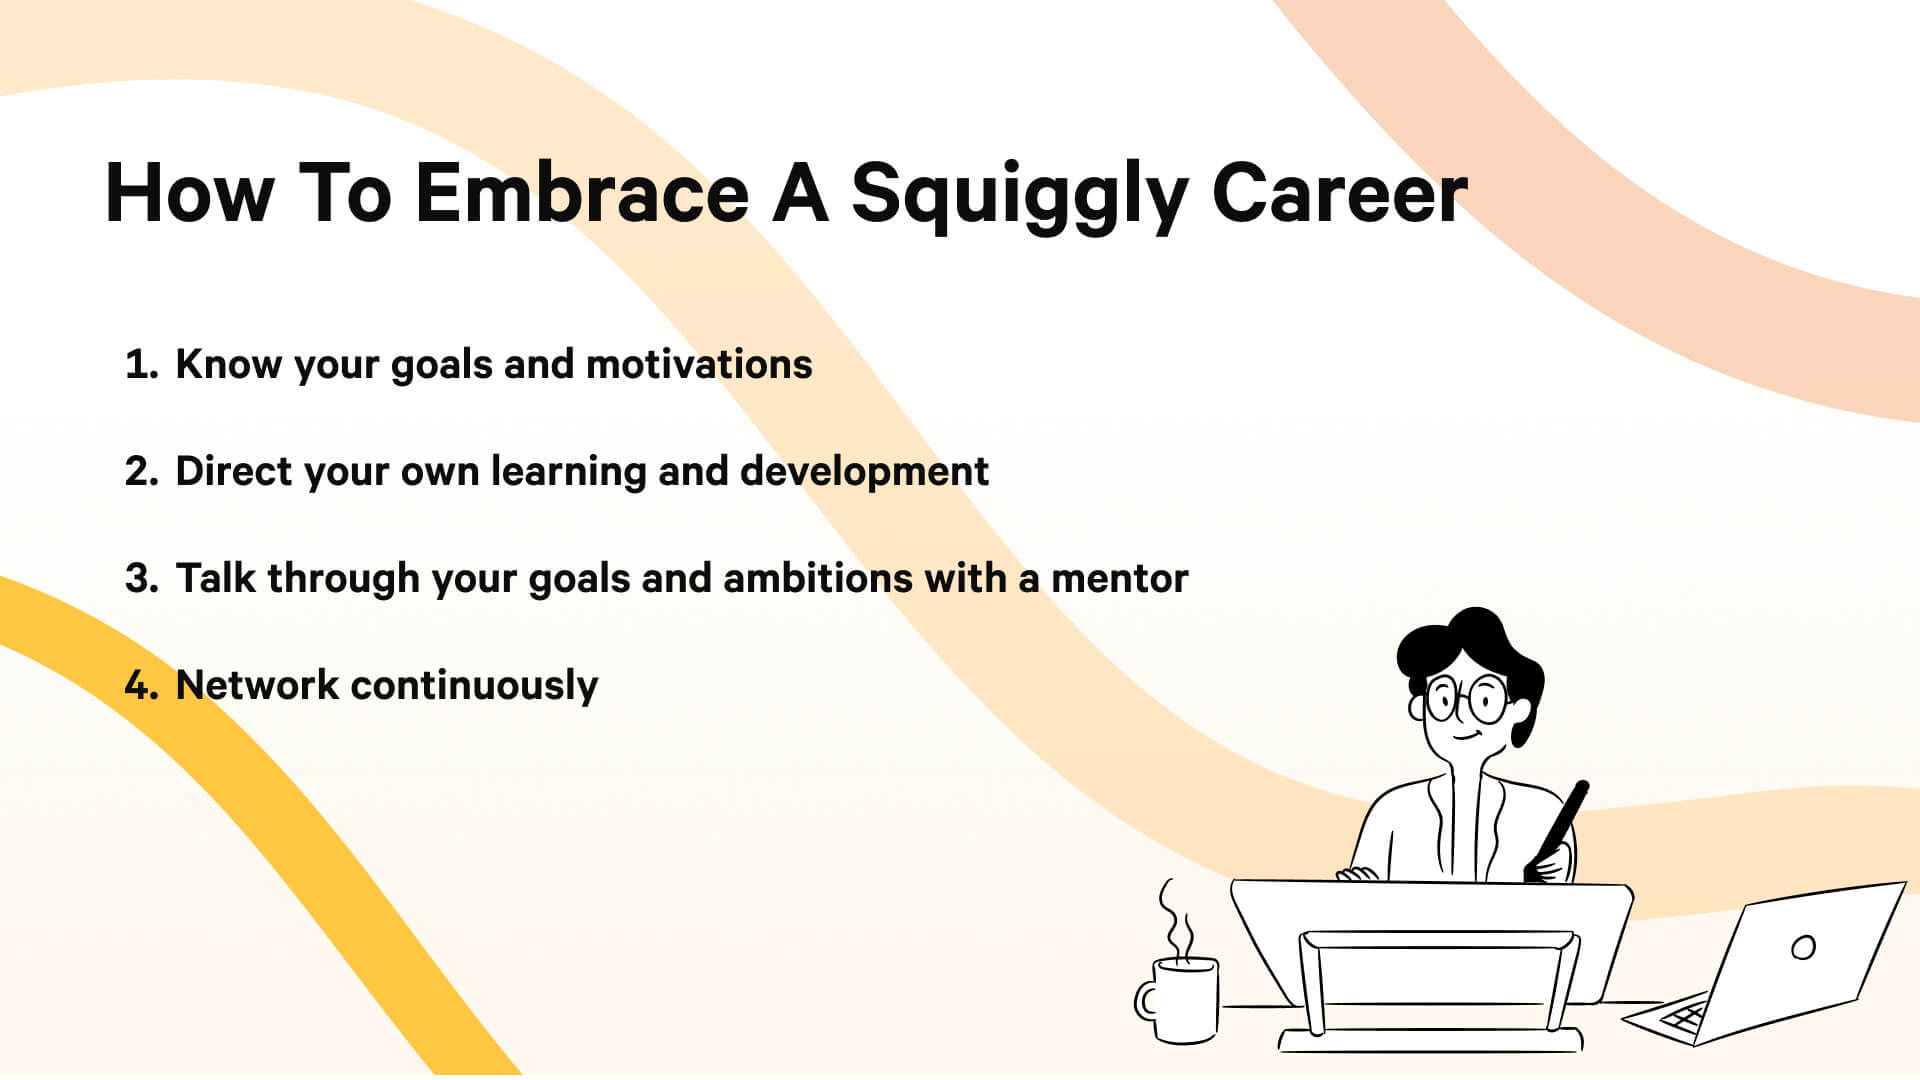 Embracing a squiggly careers means knowing your goals and motivations, directing your own learning, having mentors to guide you, and always networking.